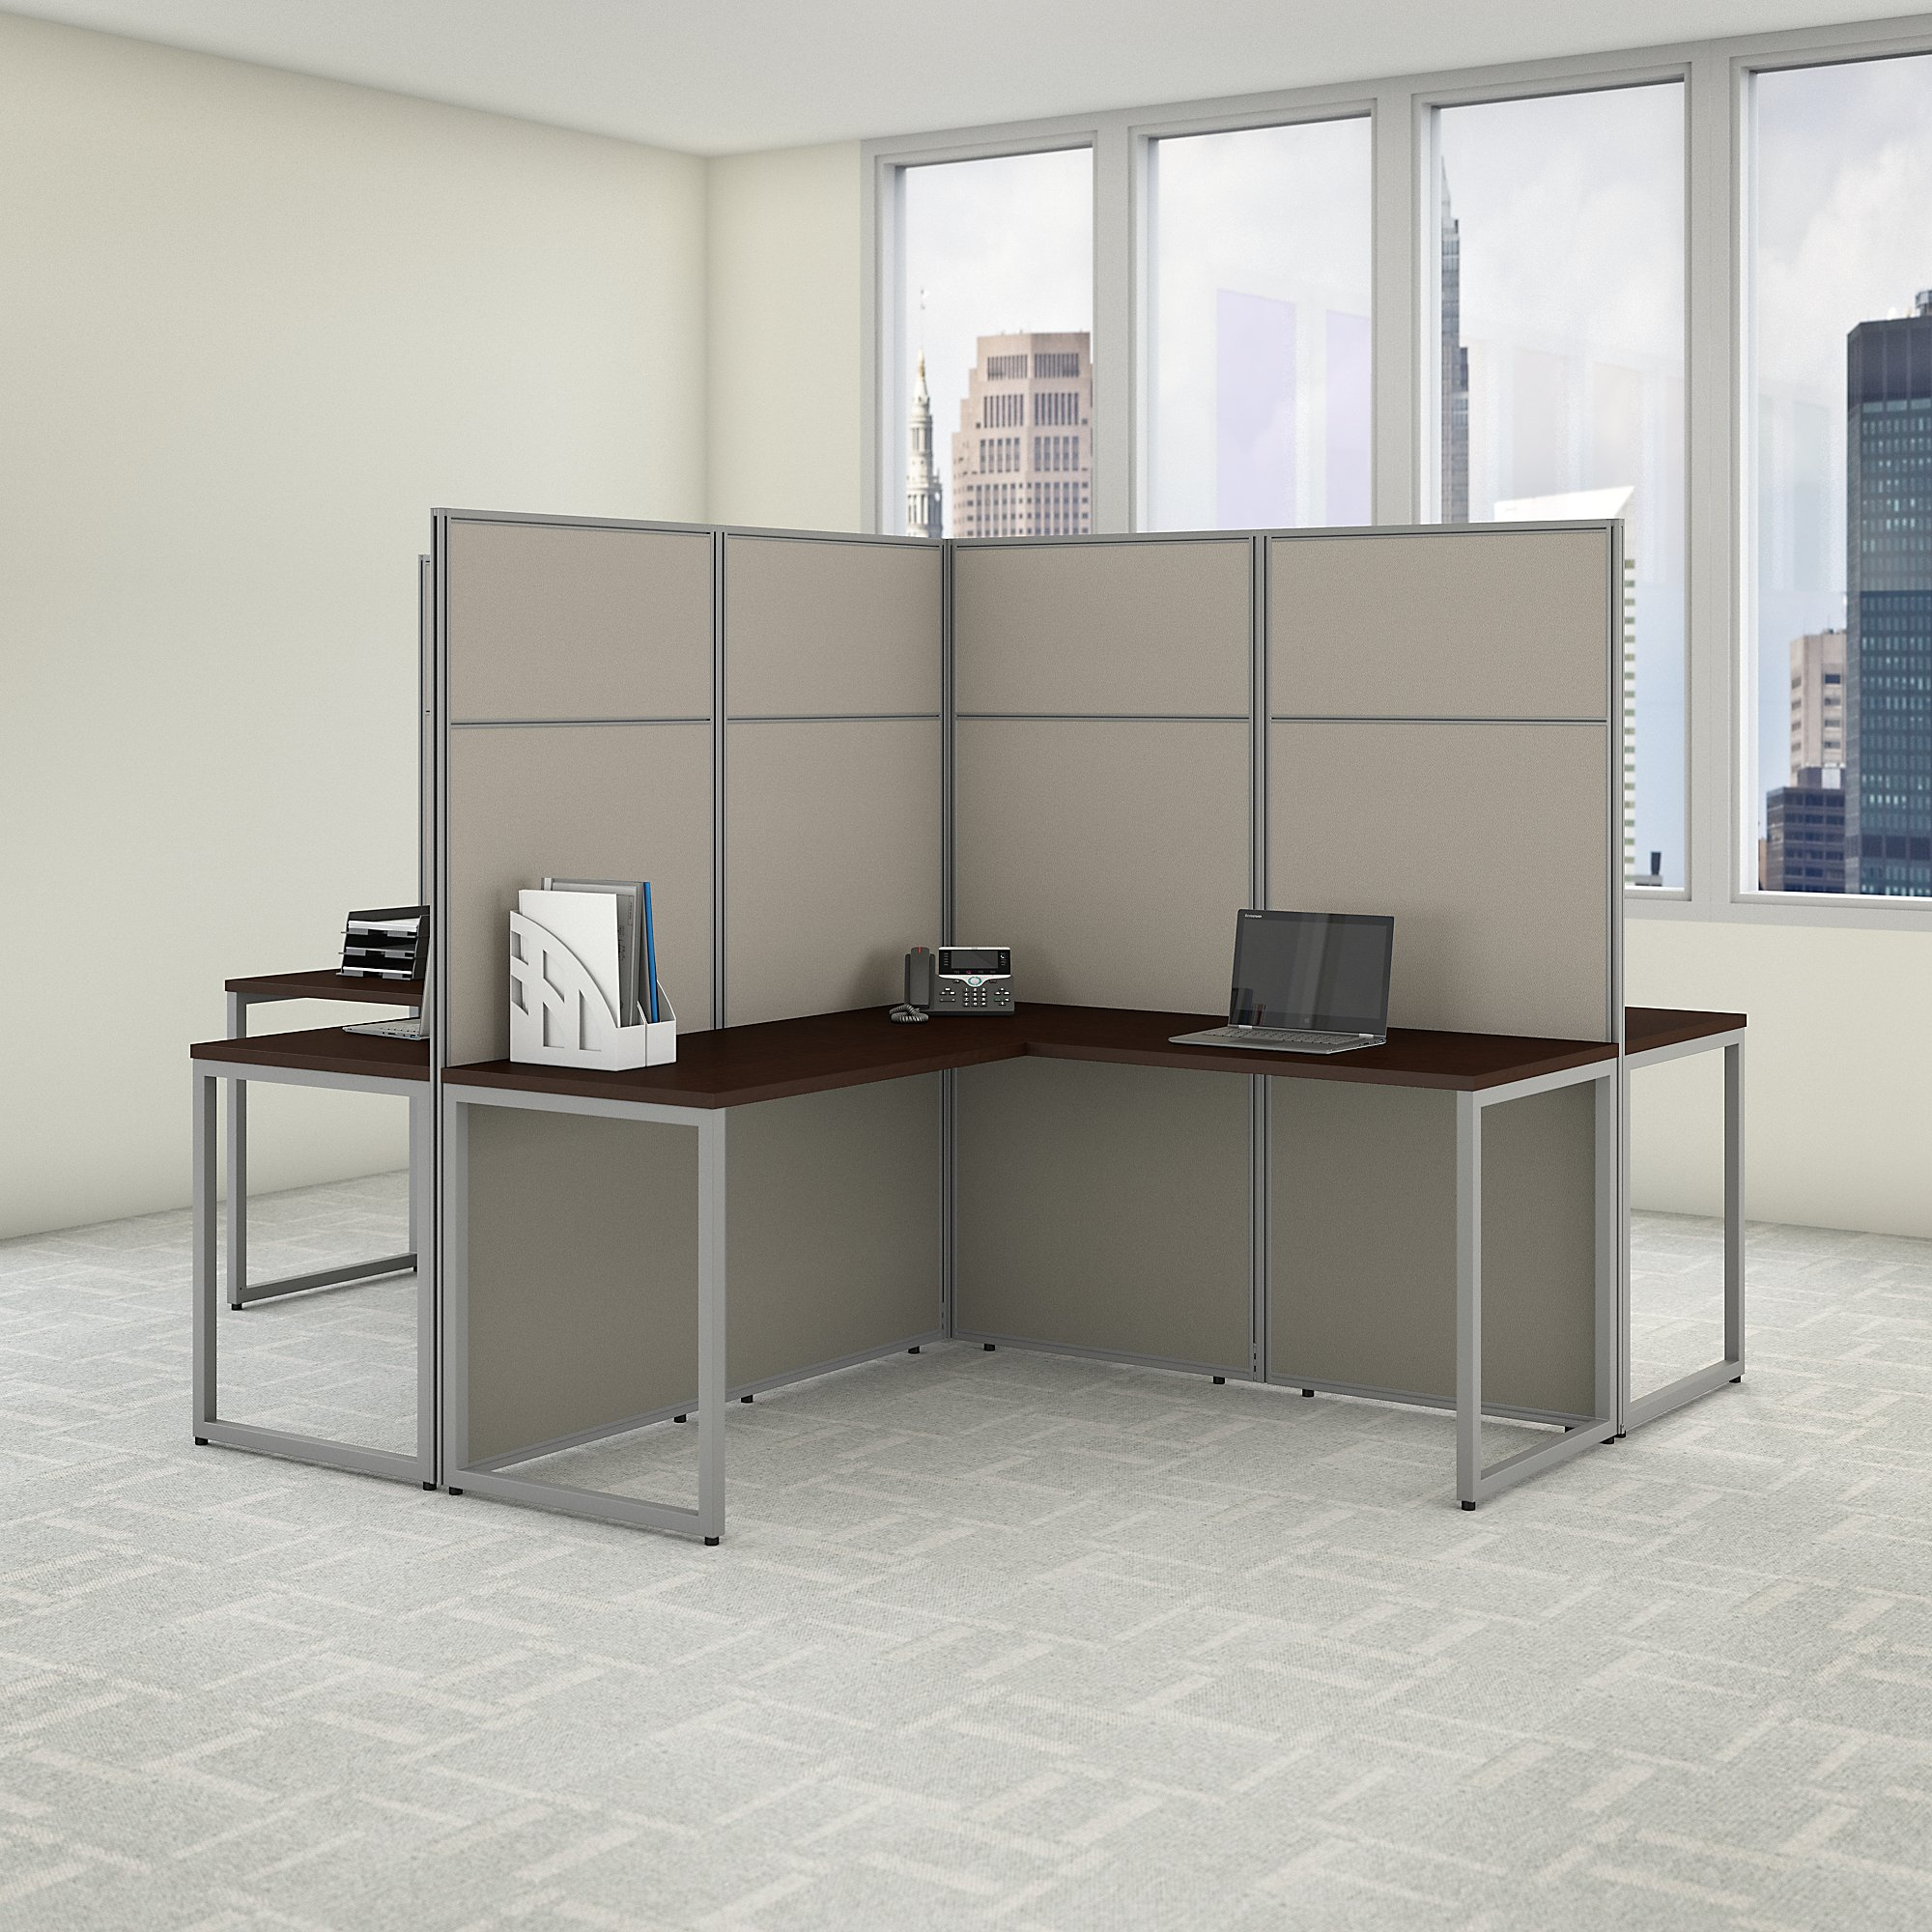 easy office 4 person cubicle configuration in mocha cherry